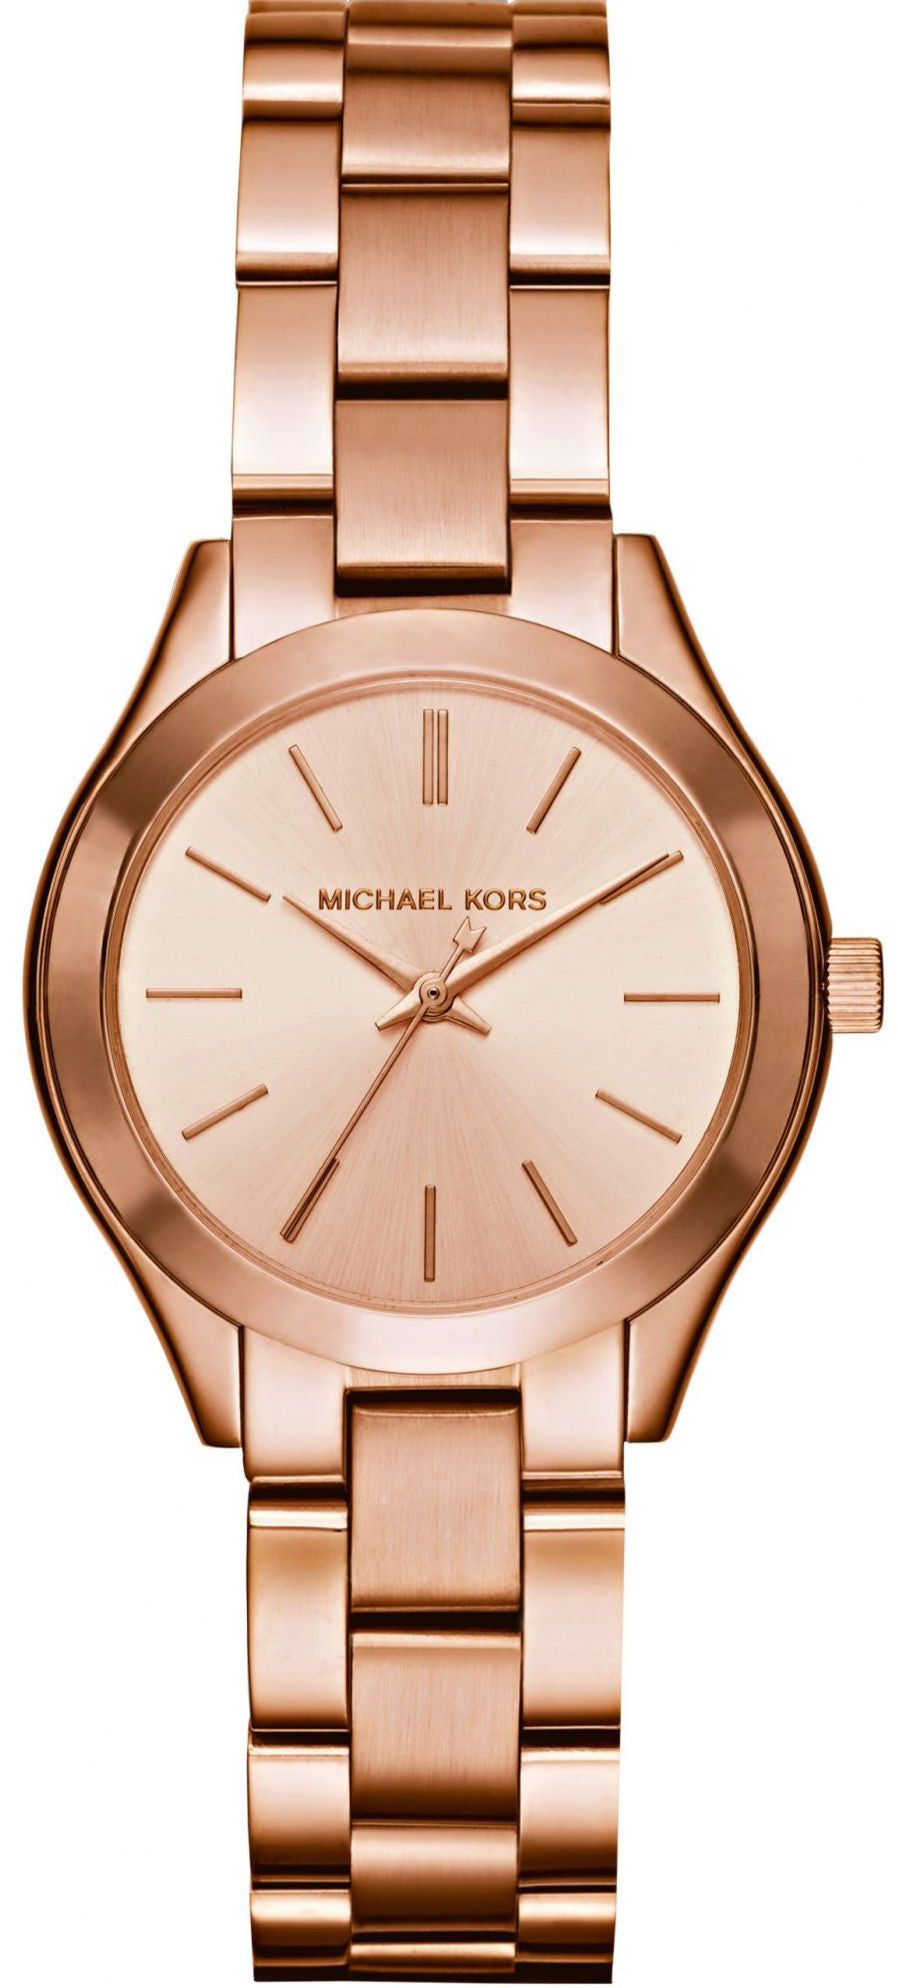 Michael Kors Watch Slim Runway